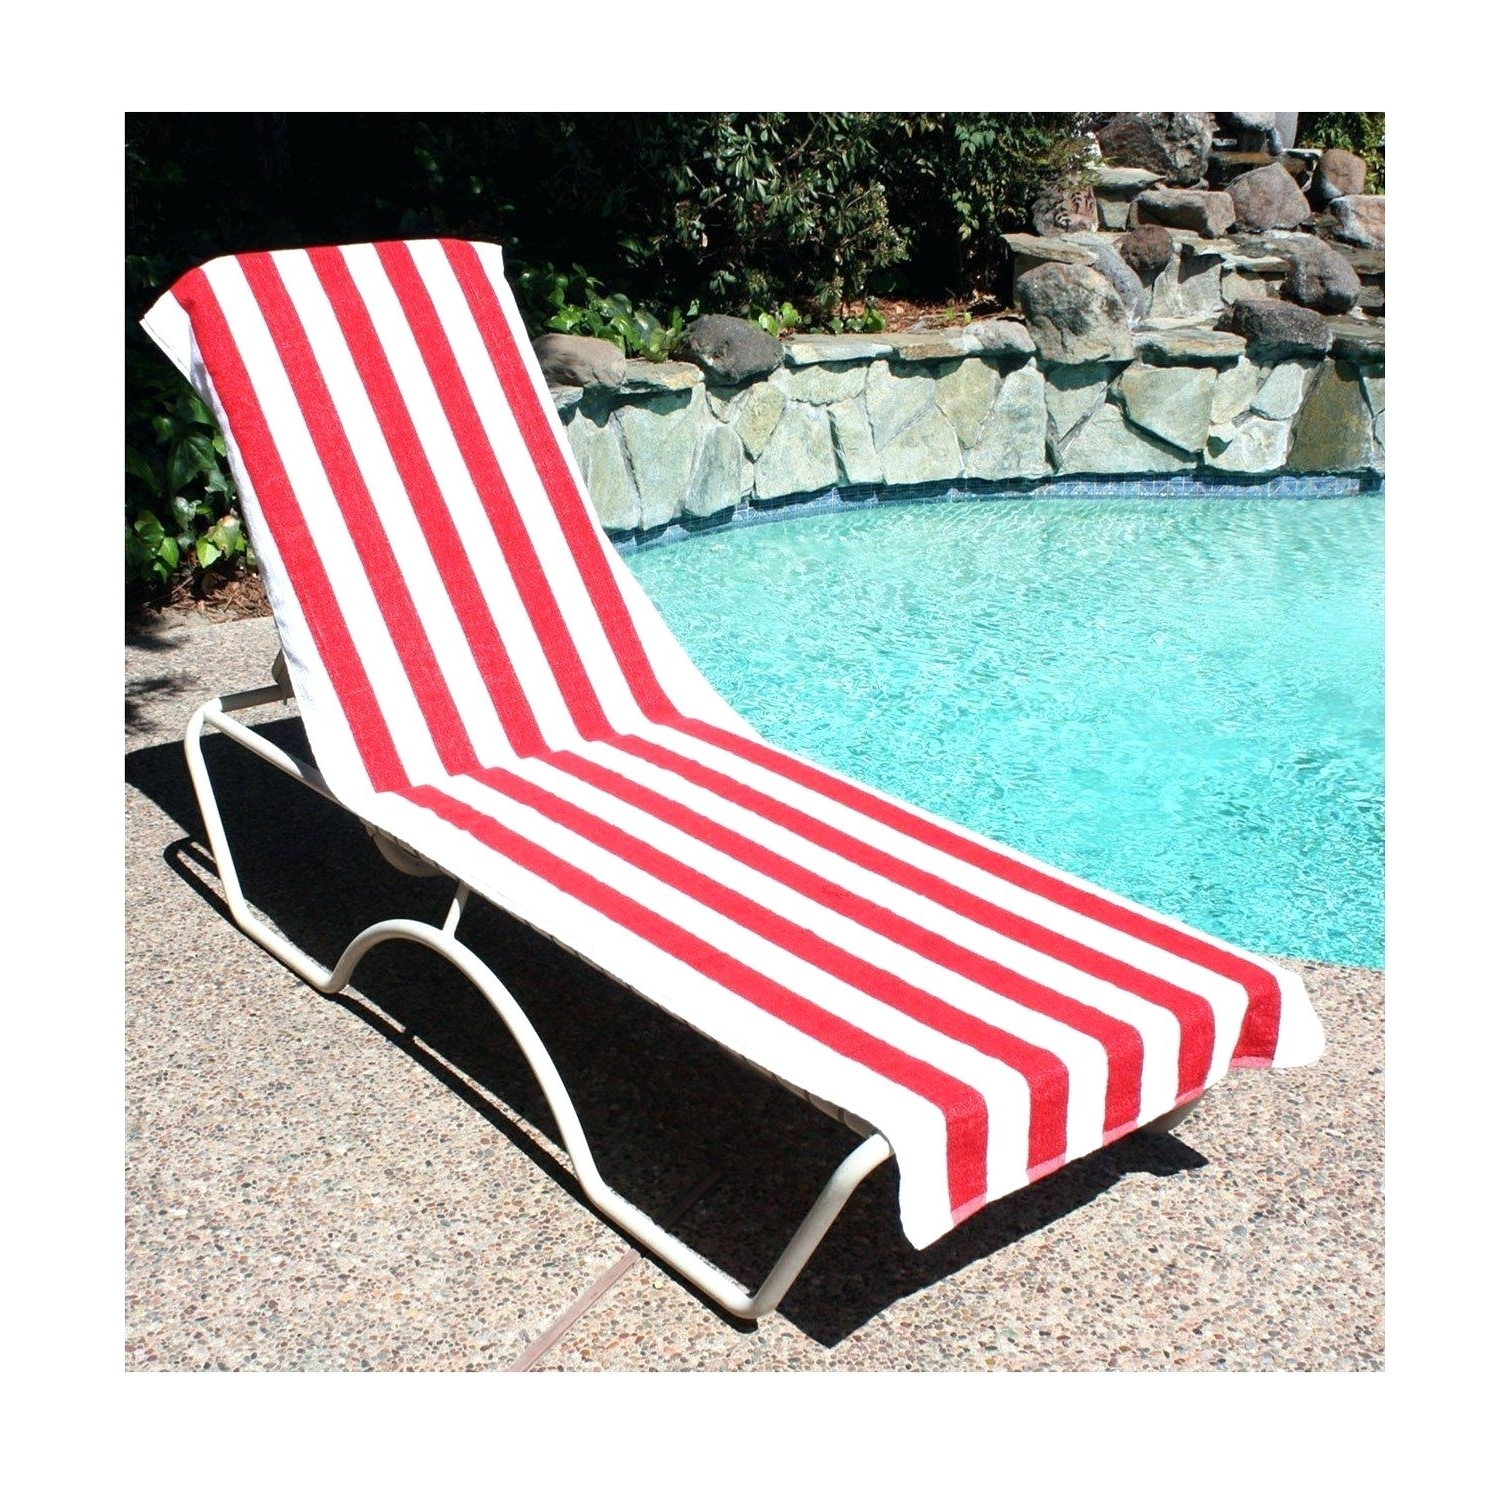 Most Recent Beach Chair Covers Towel Lounge Terry Cloth – Biophilessurf With Regard To Chaise Lounge Towel Covers (View 11 of 15)